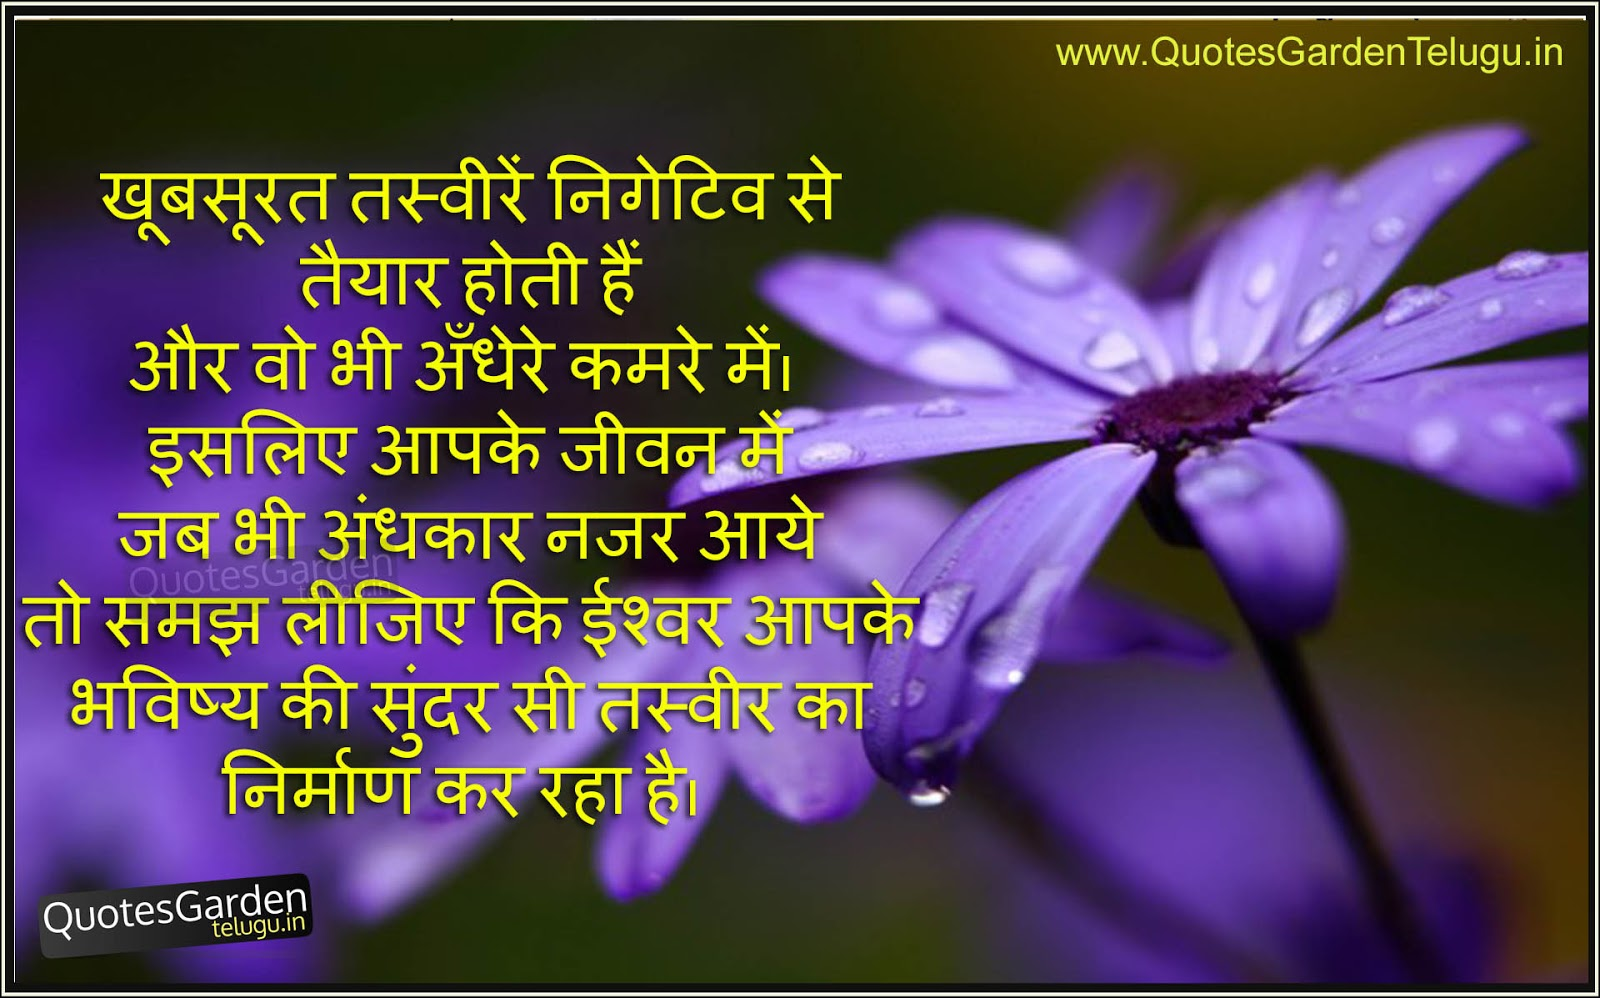 Heart Touching Life Quotes In Hindi Quotes Garden Telugu Telugu